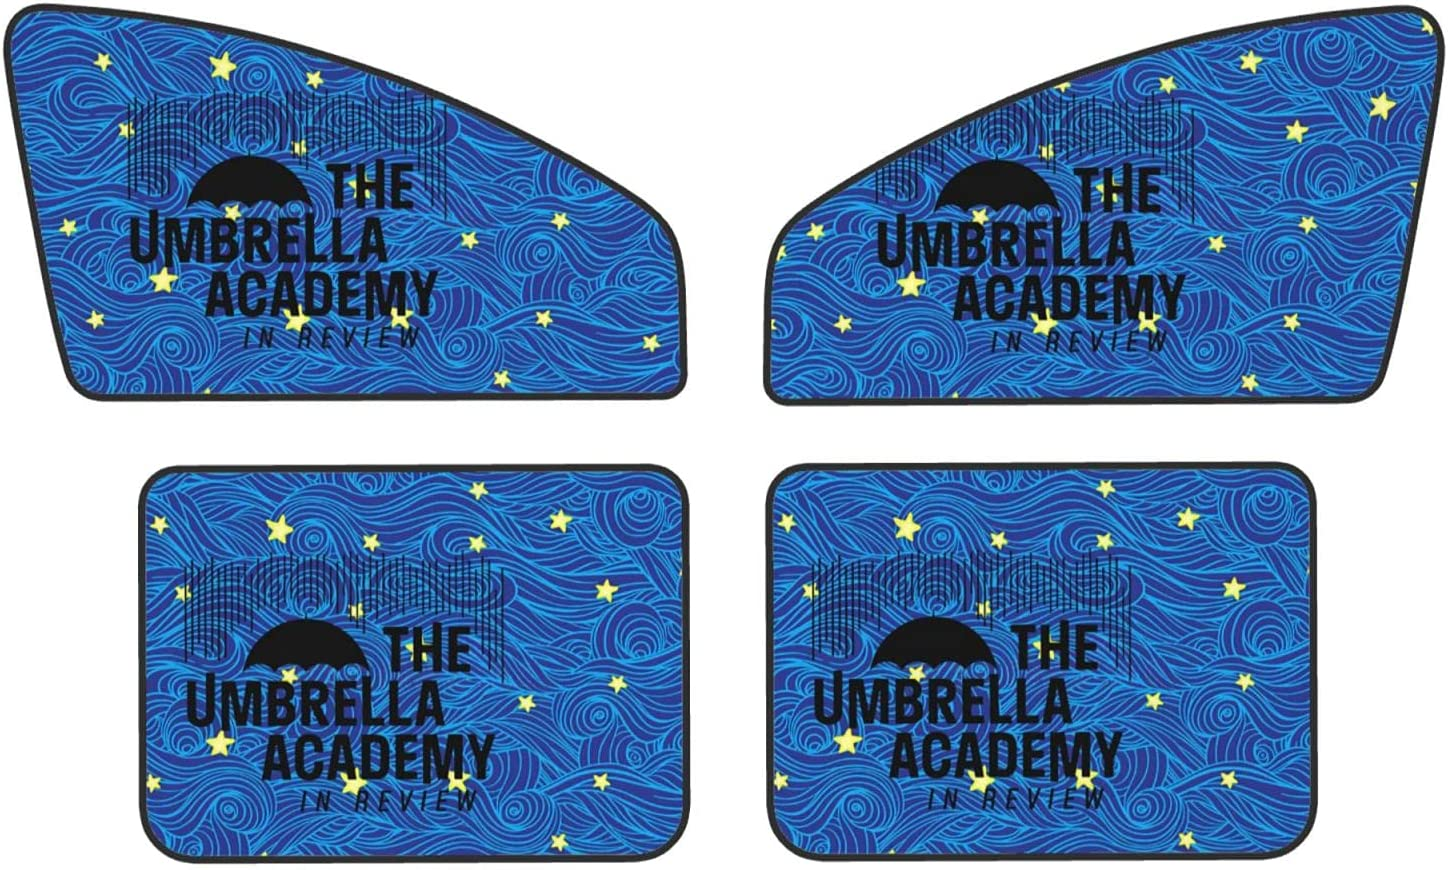 Umbrella Academy Universal Car Direct sale of manufacturer Side - Shade Protects Sun shop Window